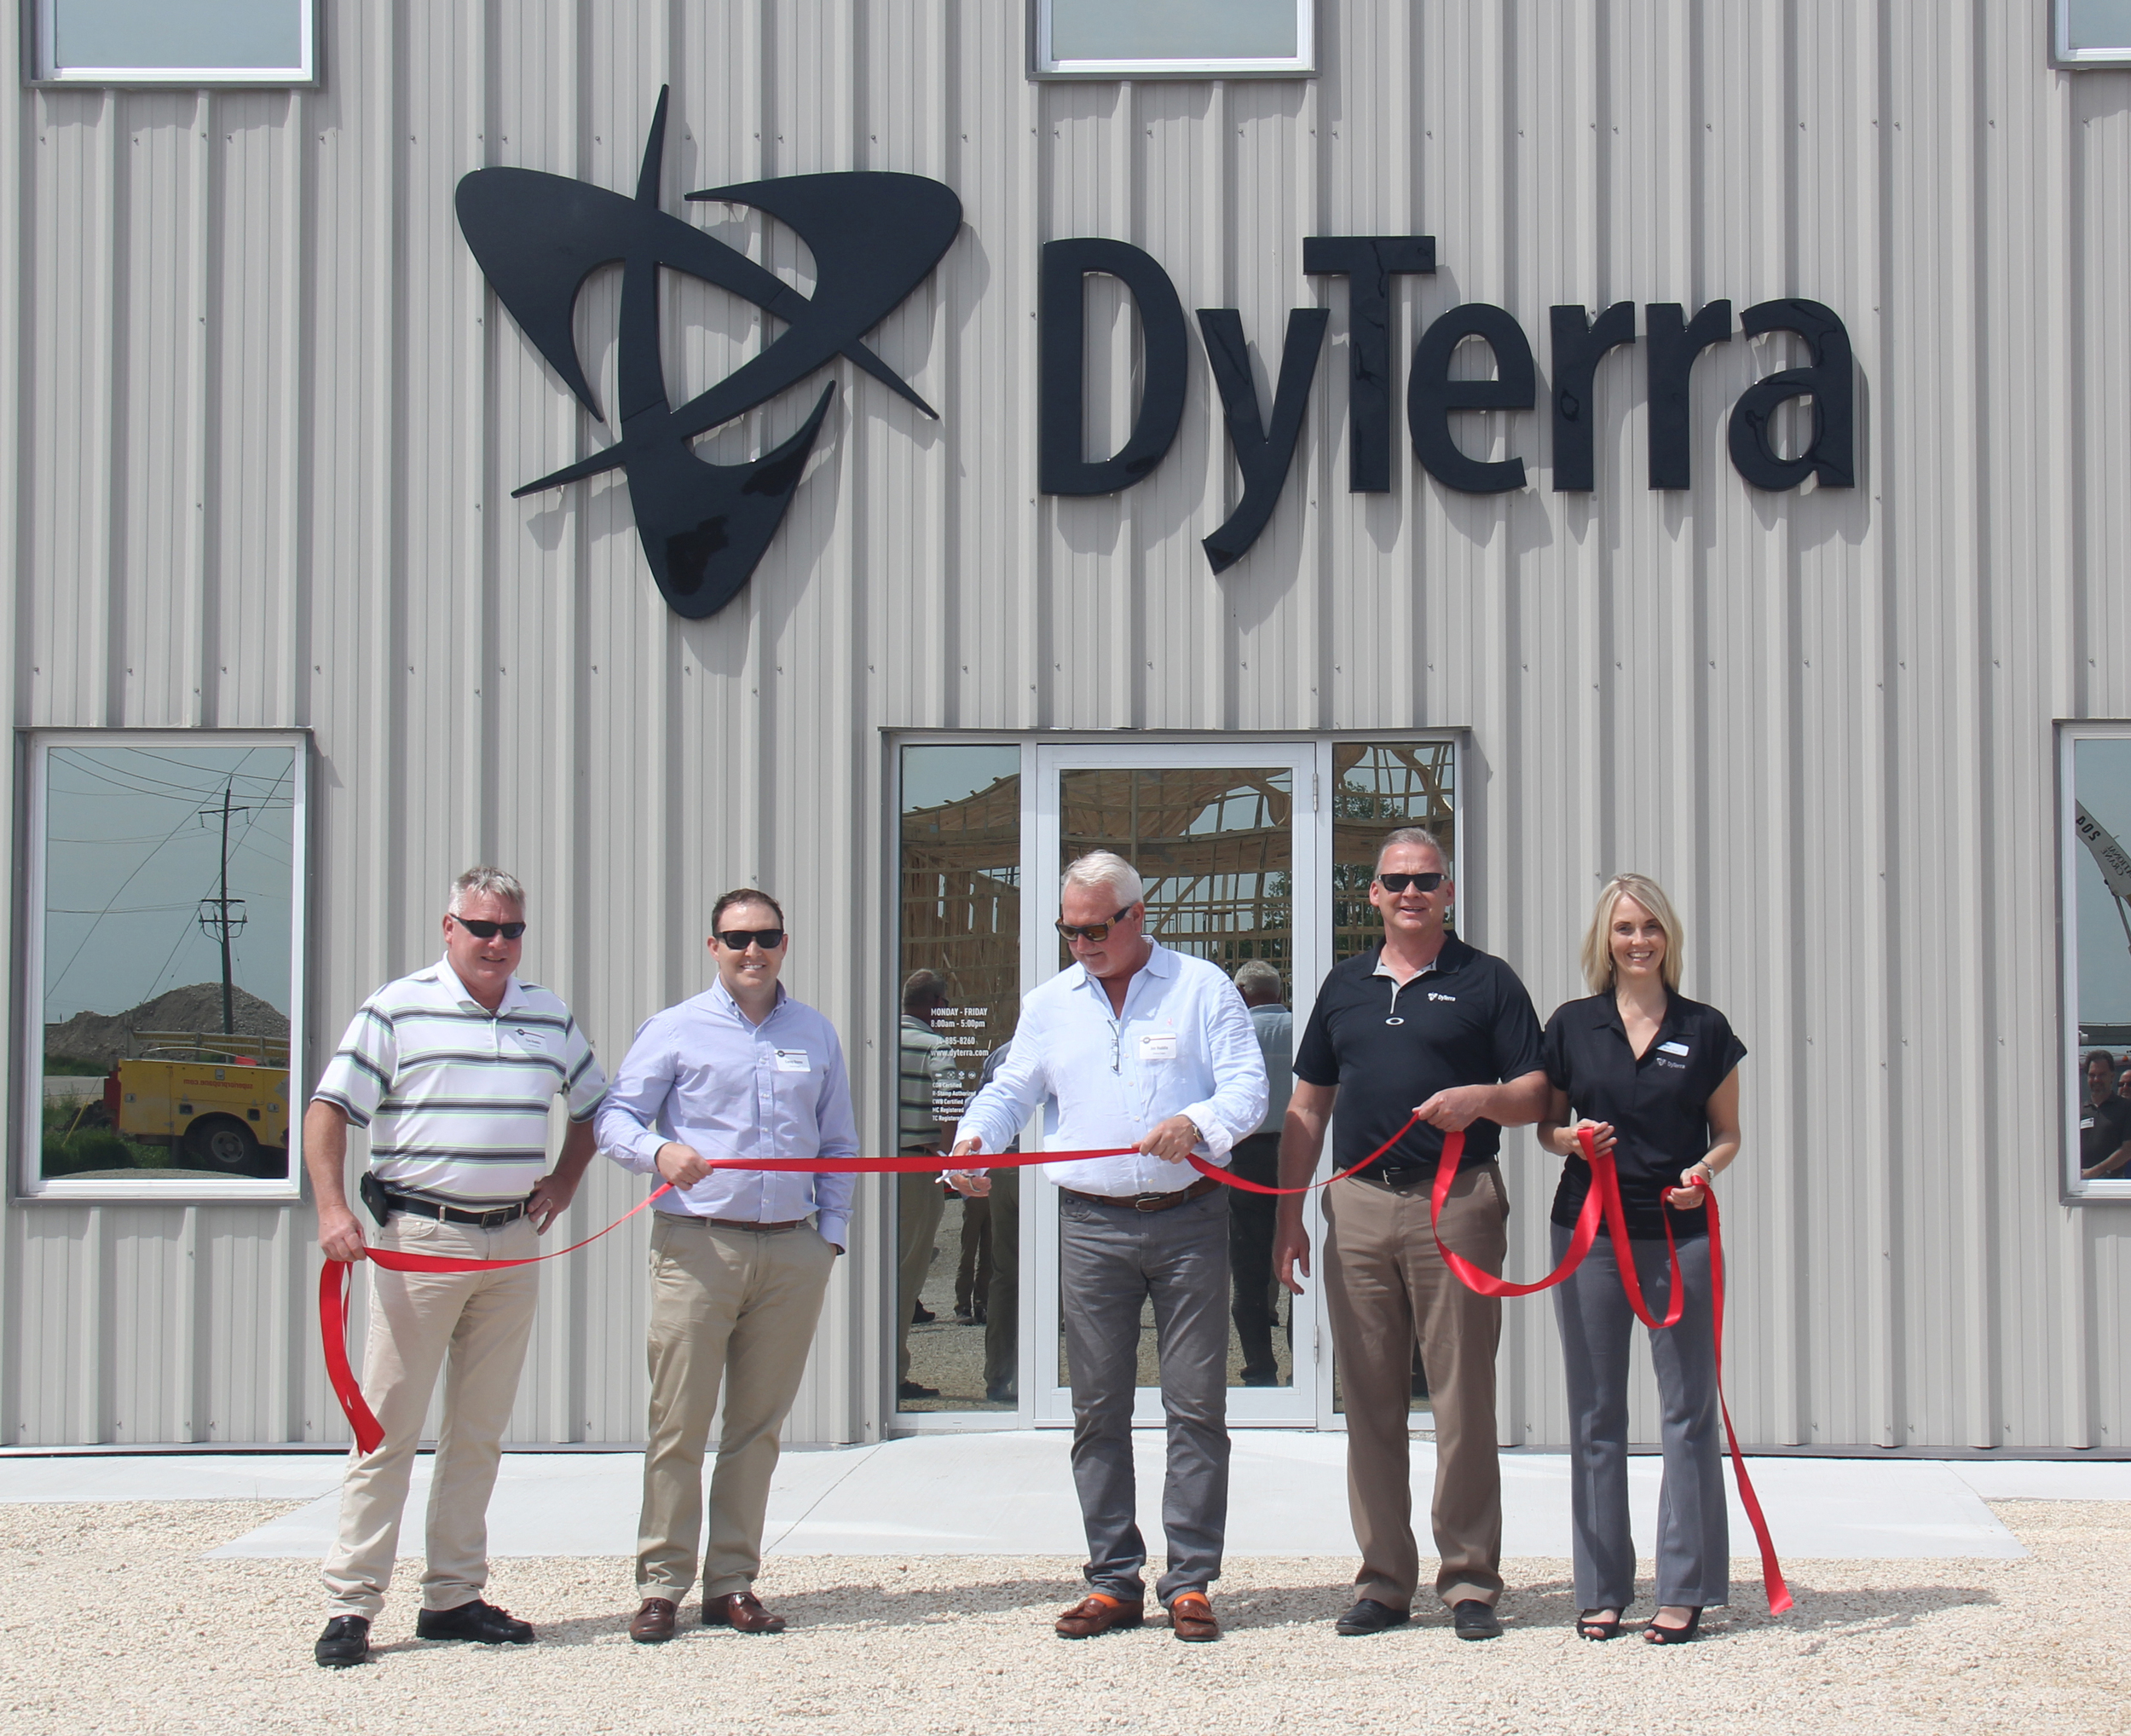 Ribbon cutting ceremony  L-R: Tim HUddle, vp purchasing & operations, diversco, Corey Boone, vice president, diversco, Jon Huddle, co-owner, diversco, Pat Beavis, president & general manager, dyterra & Tammy wood, director of internal operations, dyterra